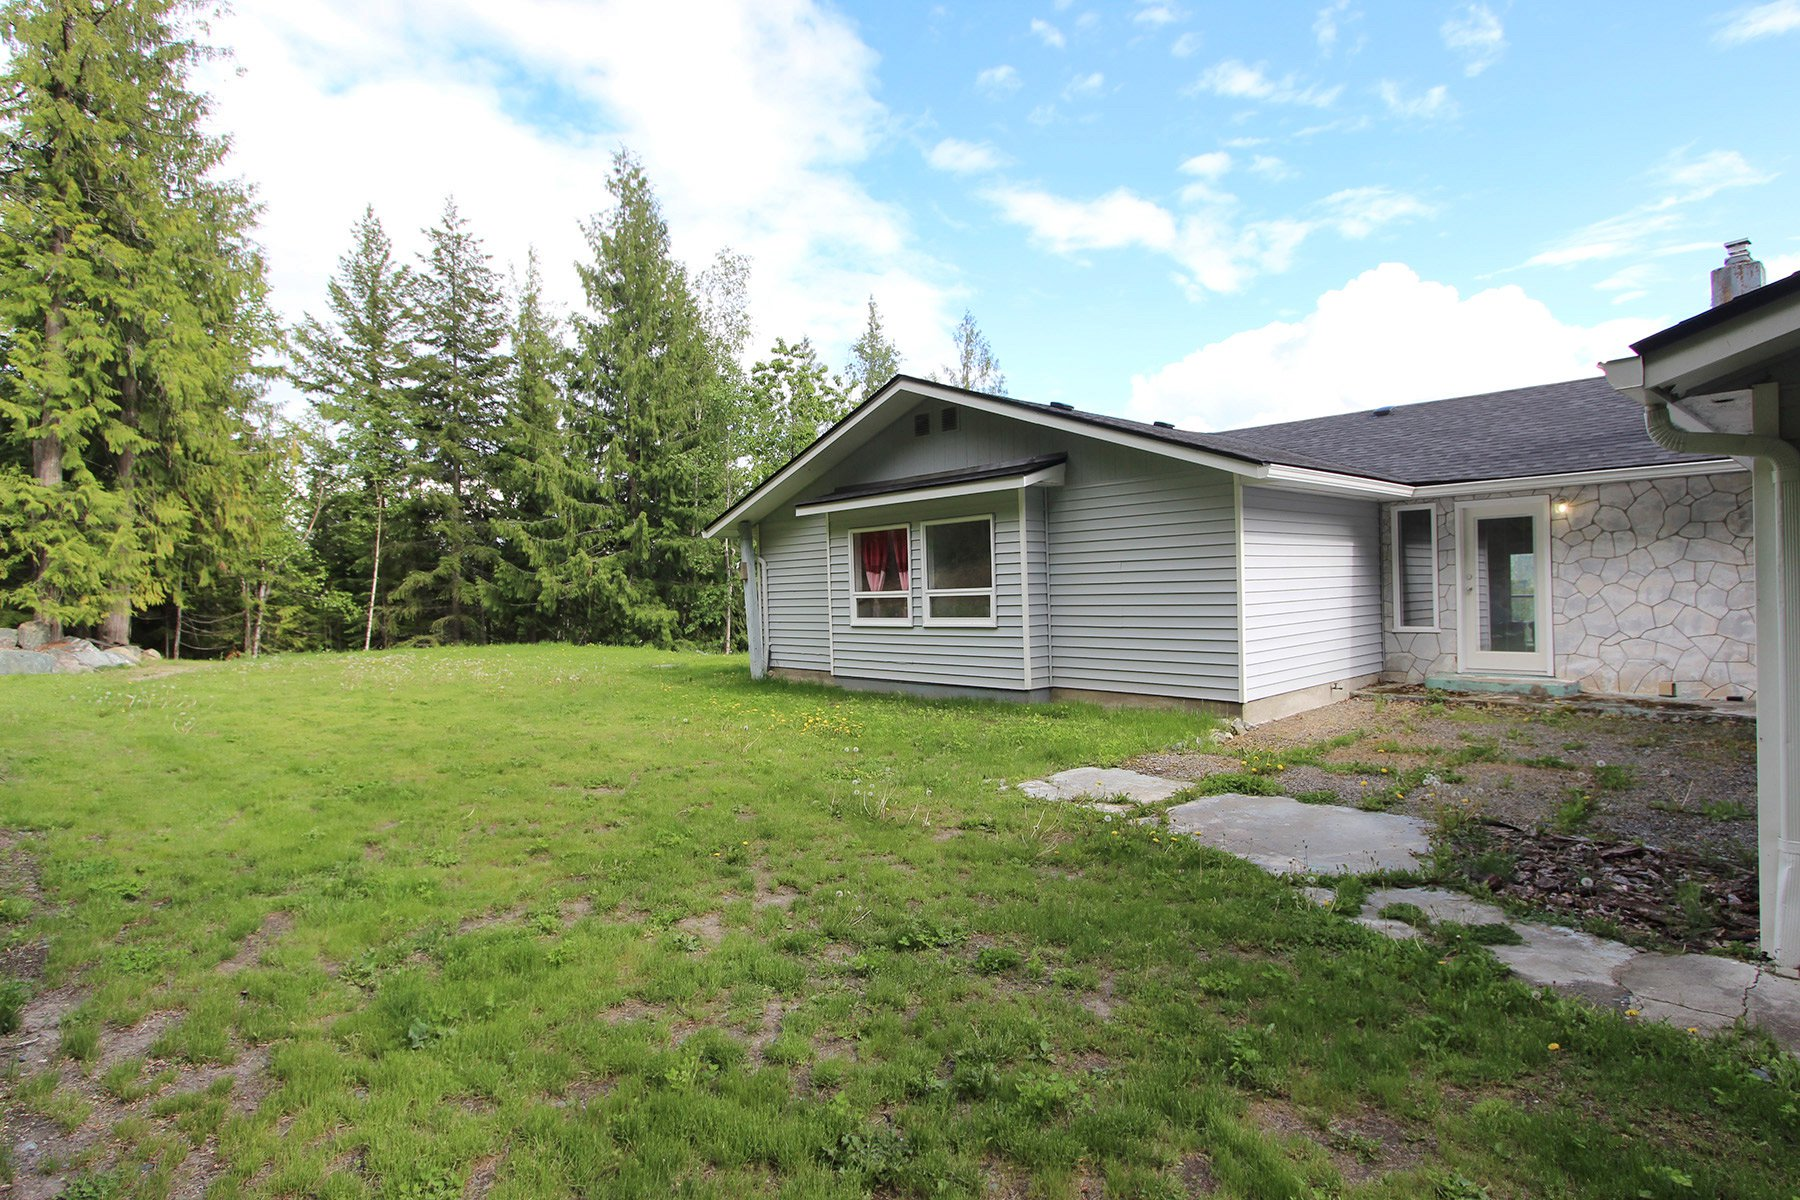 Photo 18: Photos: 6831 Magna Bay Drive in Magna Bay: House with Acreage for sale : MLS®# 10205520